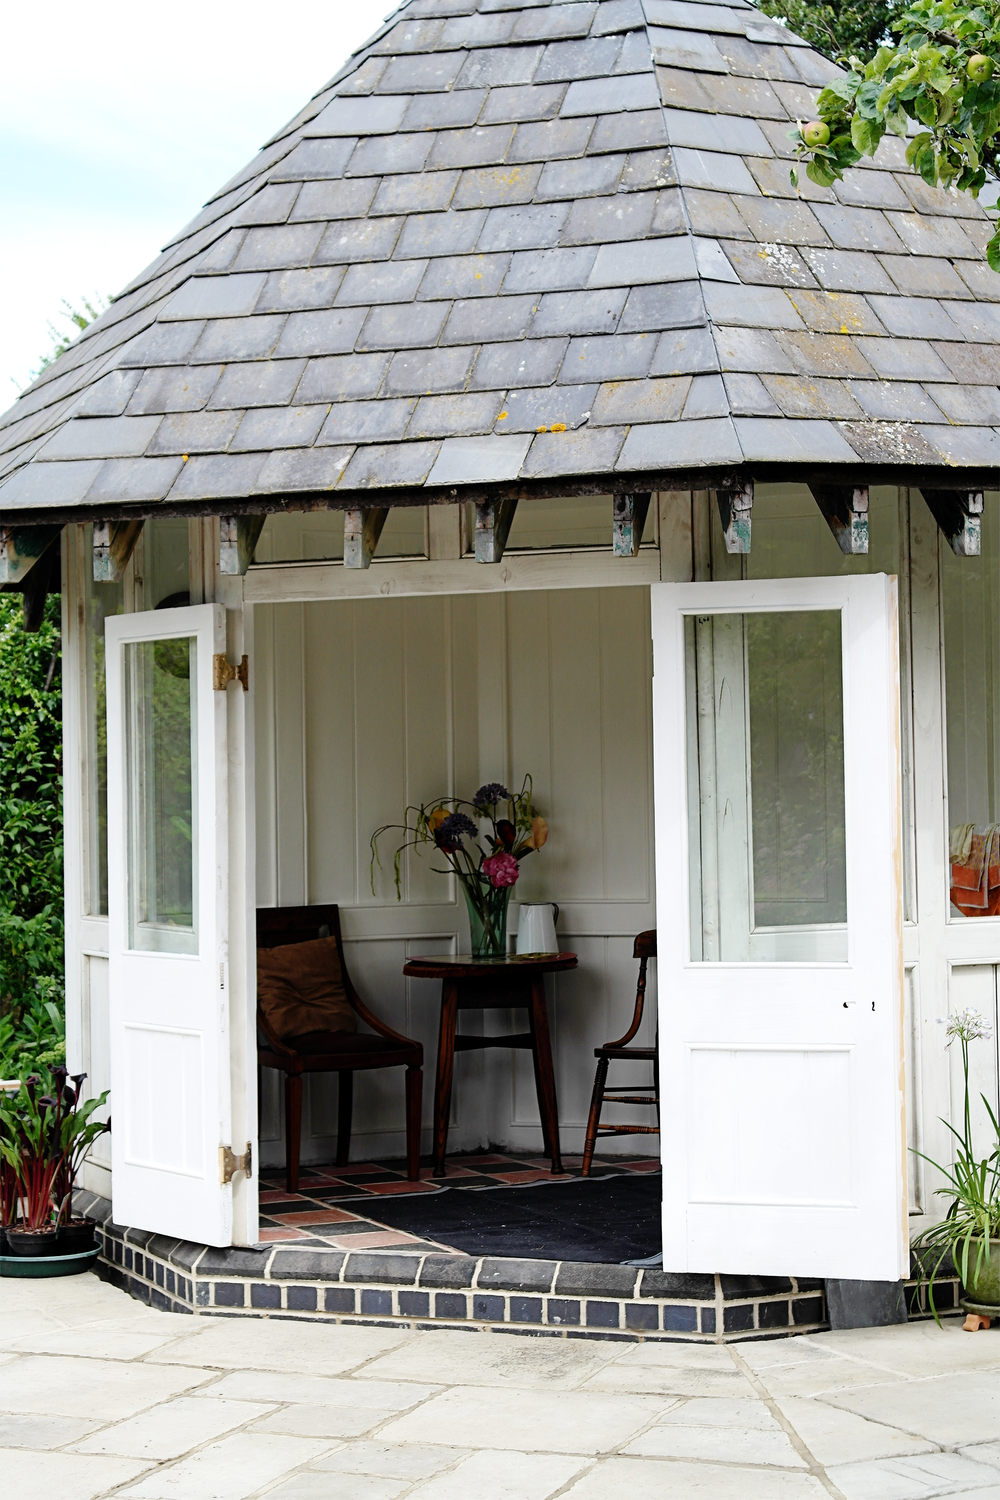 summerhouse, Summer 2015